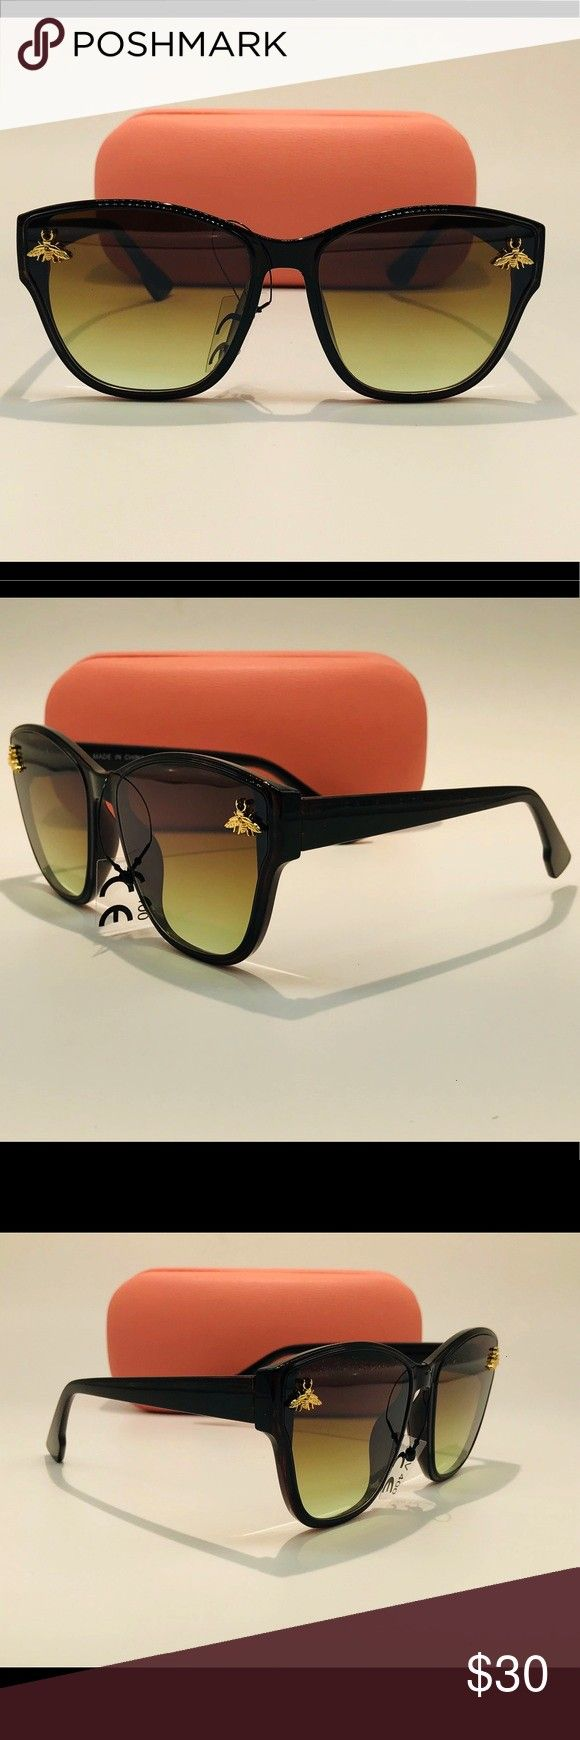 Shades Stylish Shades A ll Sunglasses include the following 1Pair of Sunglasses 1 Hard Carrying Case 1Soft Carrying Case that doubles as a cleaning cloth Accessories Sung...